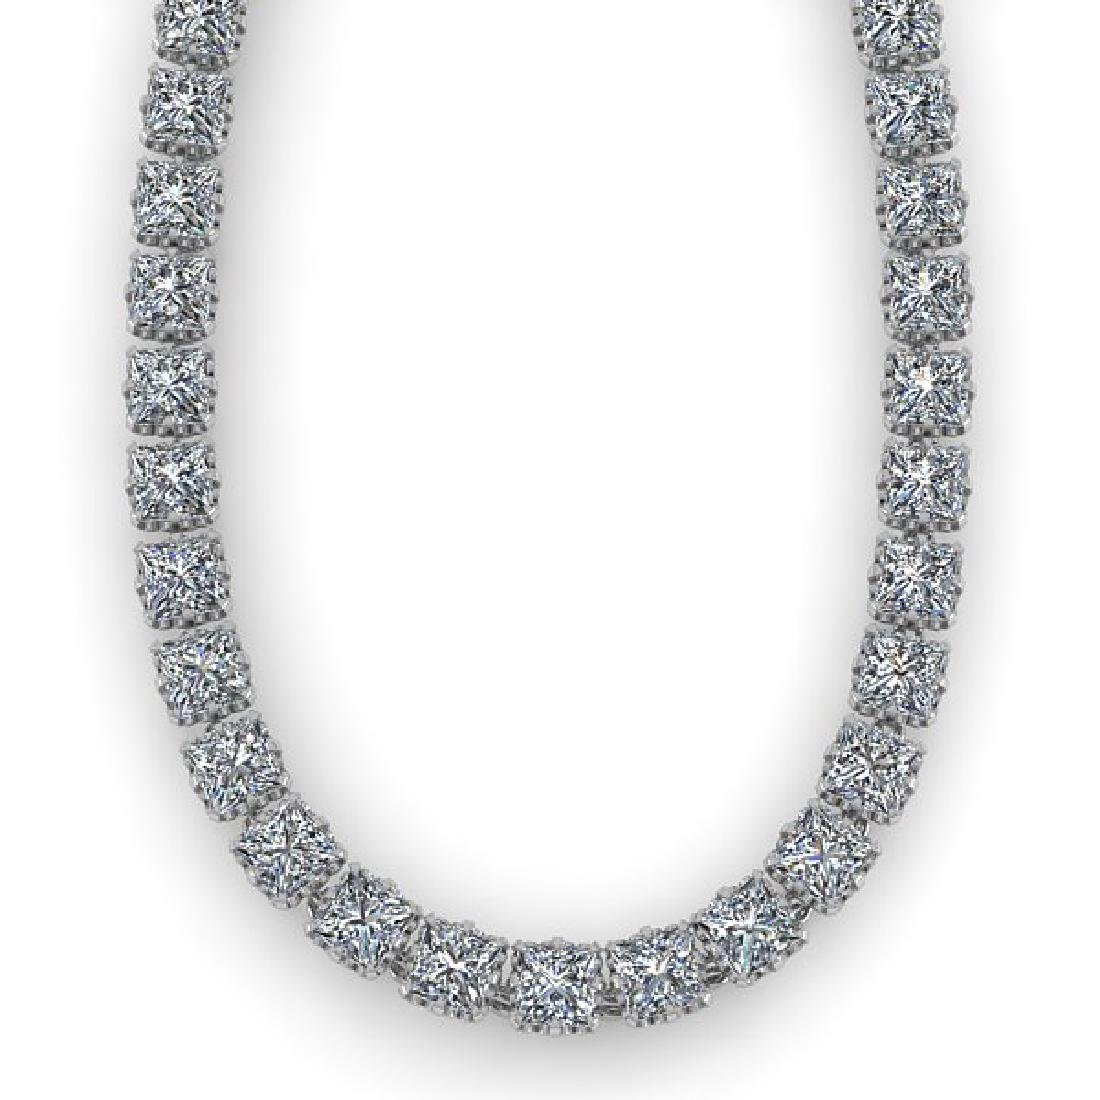 34 CTW Cushion Cut SI Certified Diamond Necklace 14K - 2